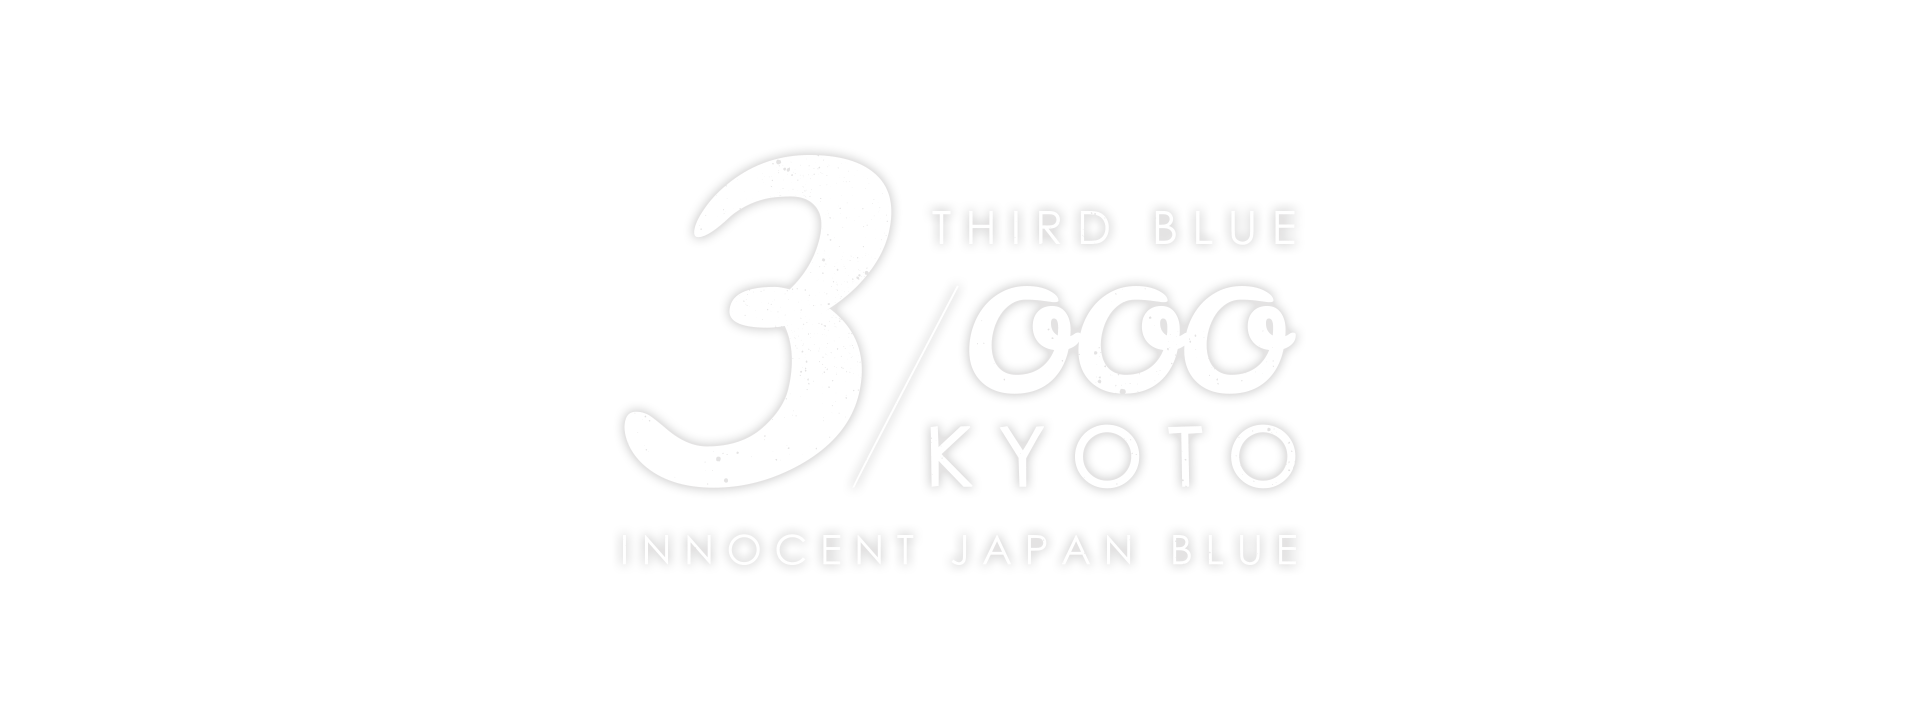 THIRD BLUE KYOTO